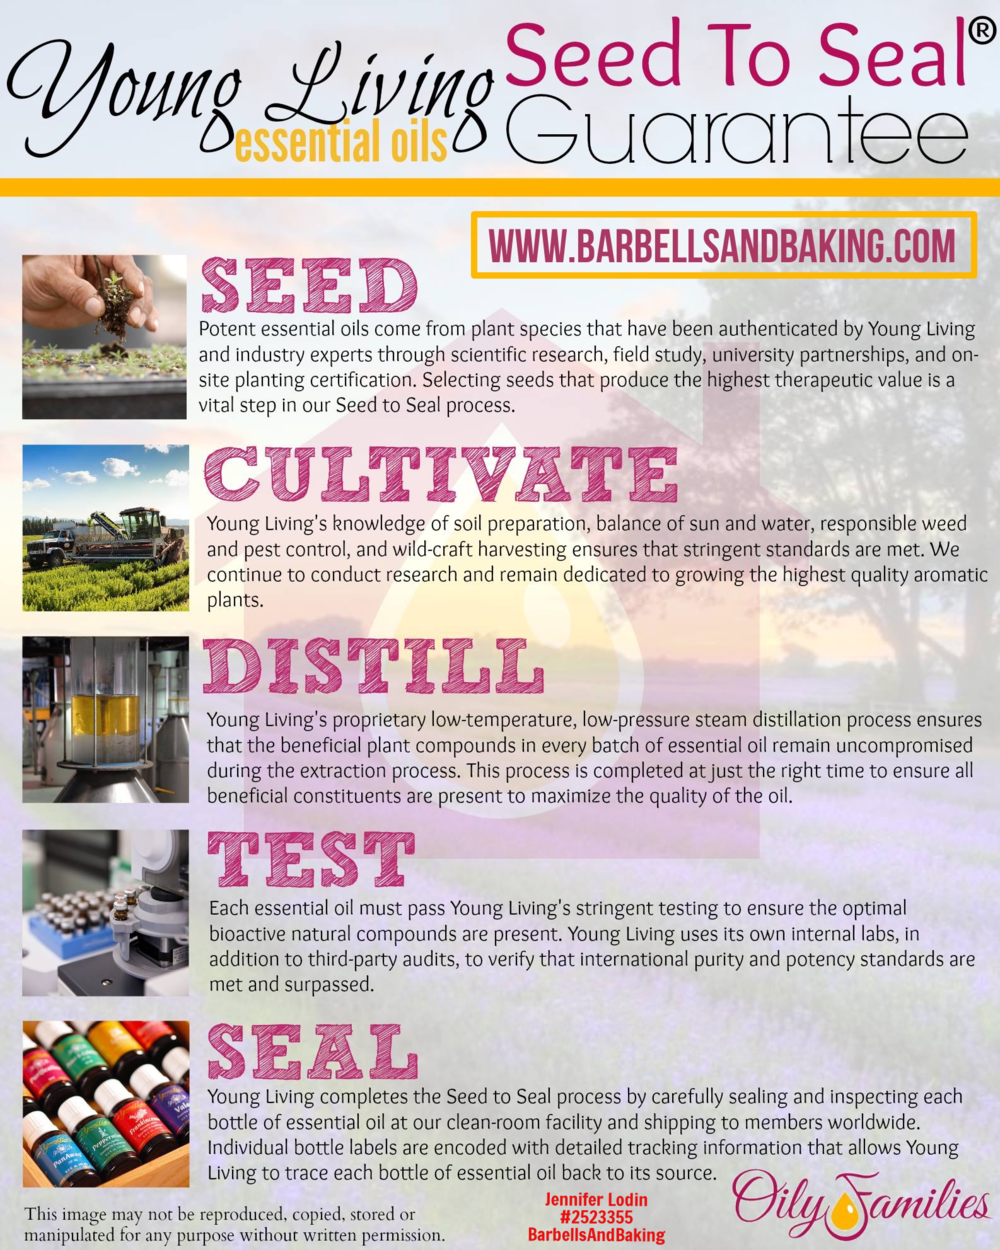 Why You Should Buy Young Living Essential Oils | Seed to Seal Promise | www.barbellsandbaking.com